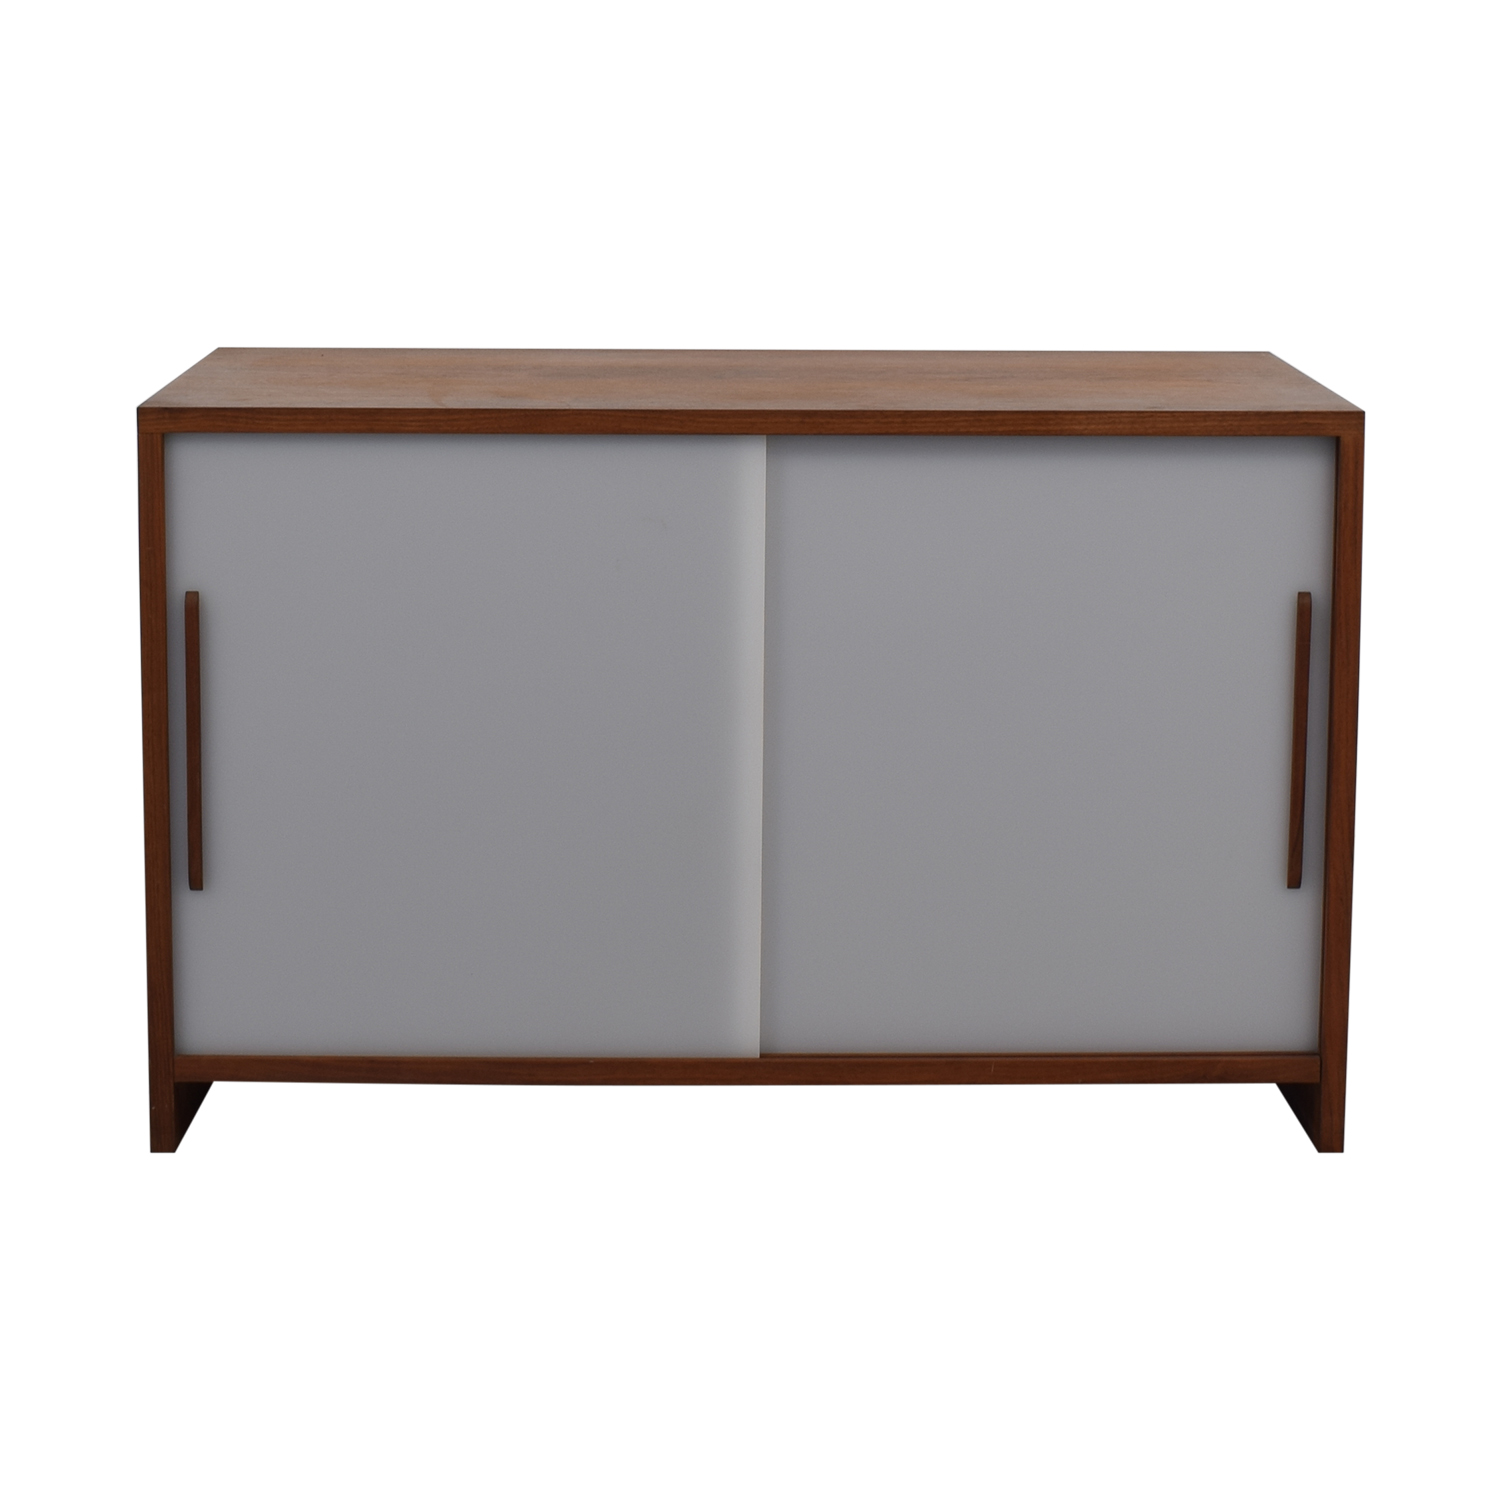 shop Custom Solid Walnut Cabinet with Sliding Plexiglass Doors and Walnut Handles  Cabinets & Sideboards